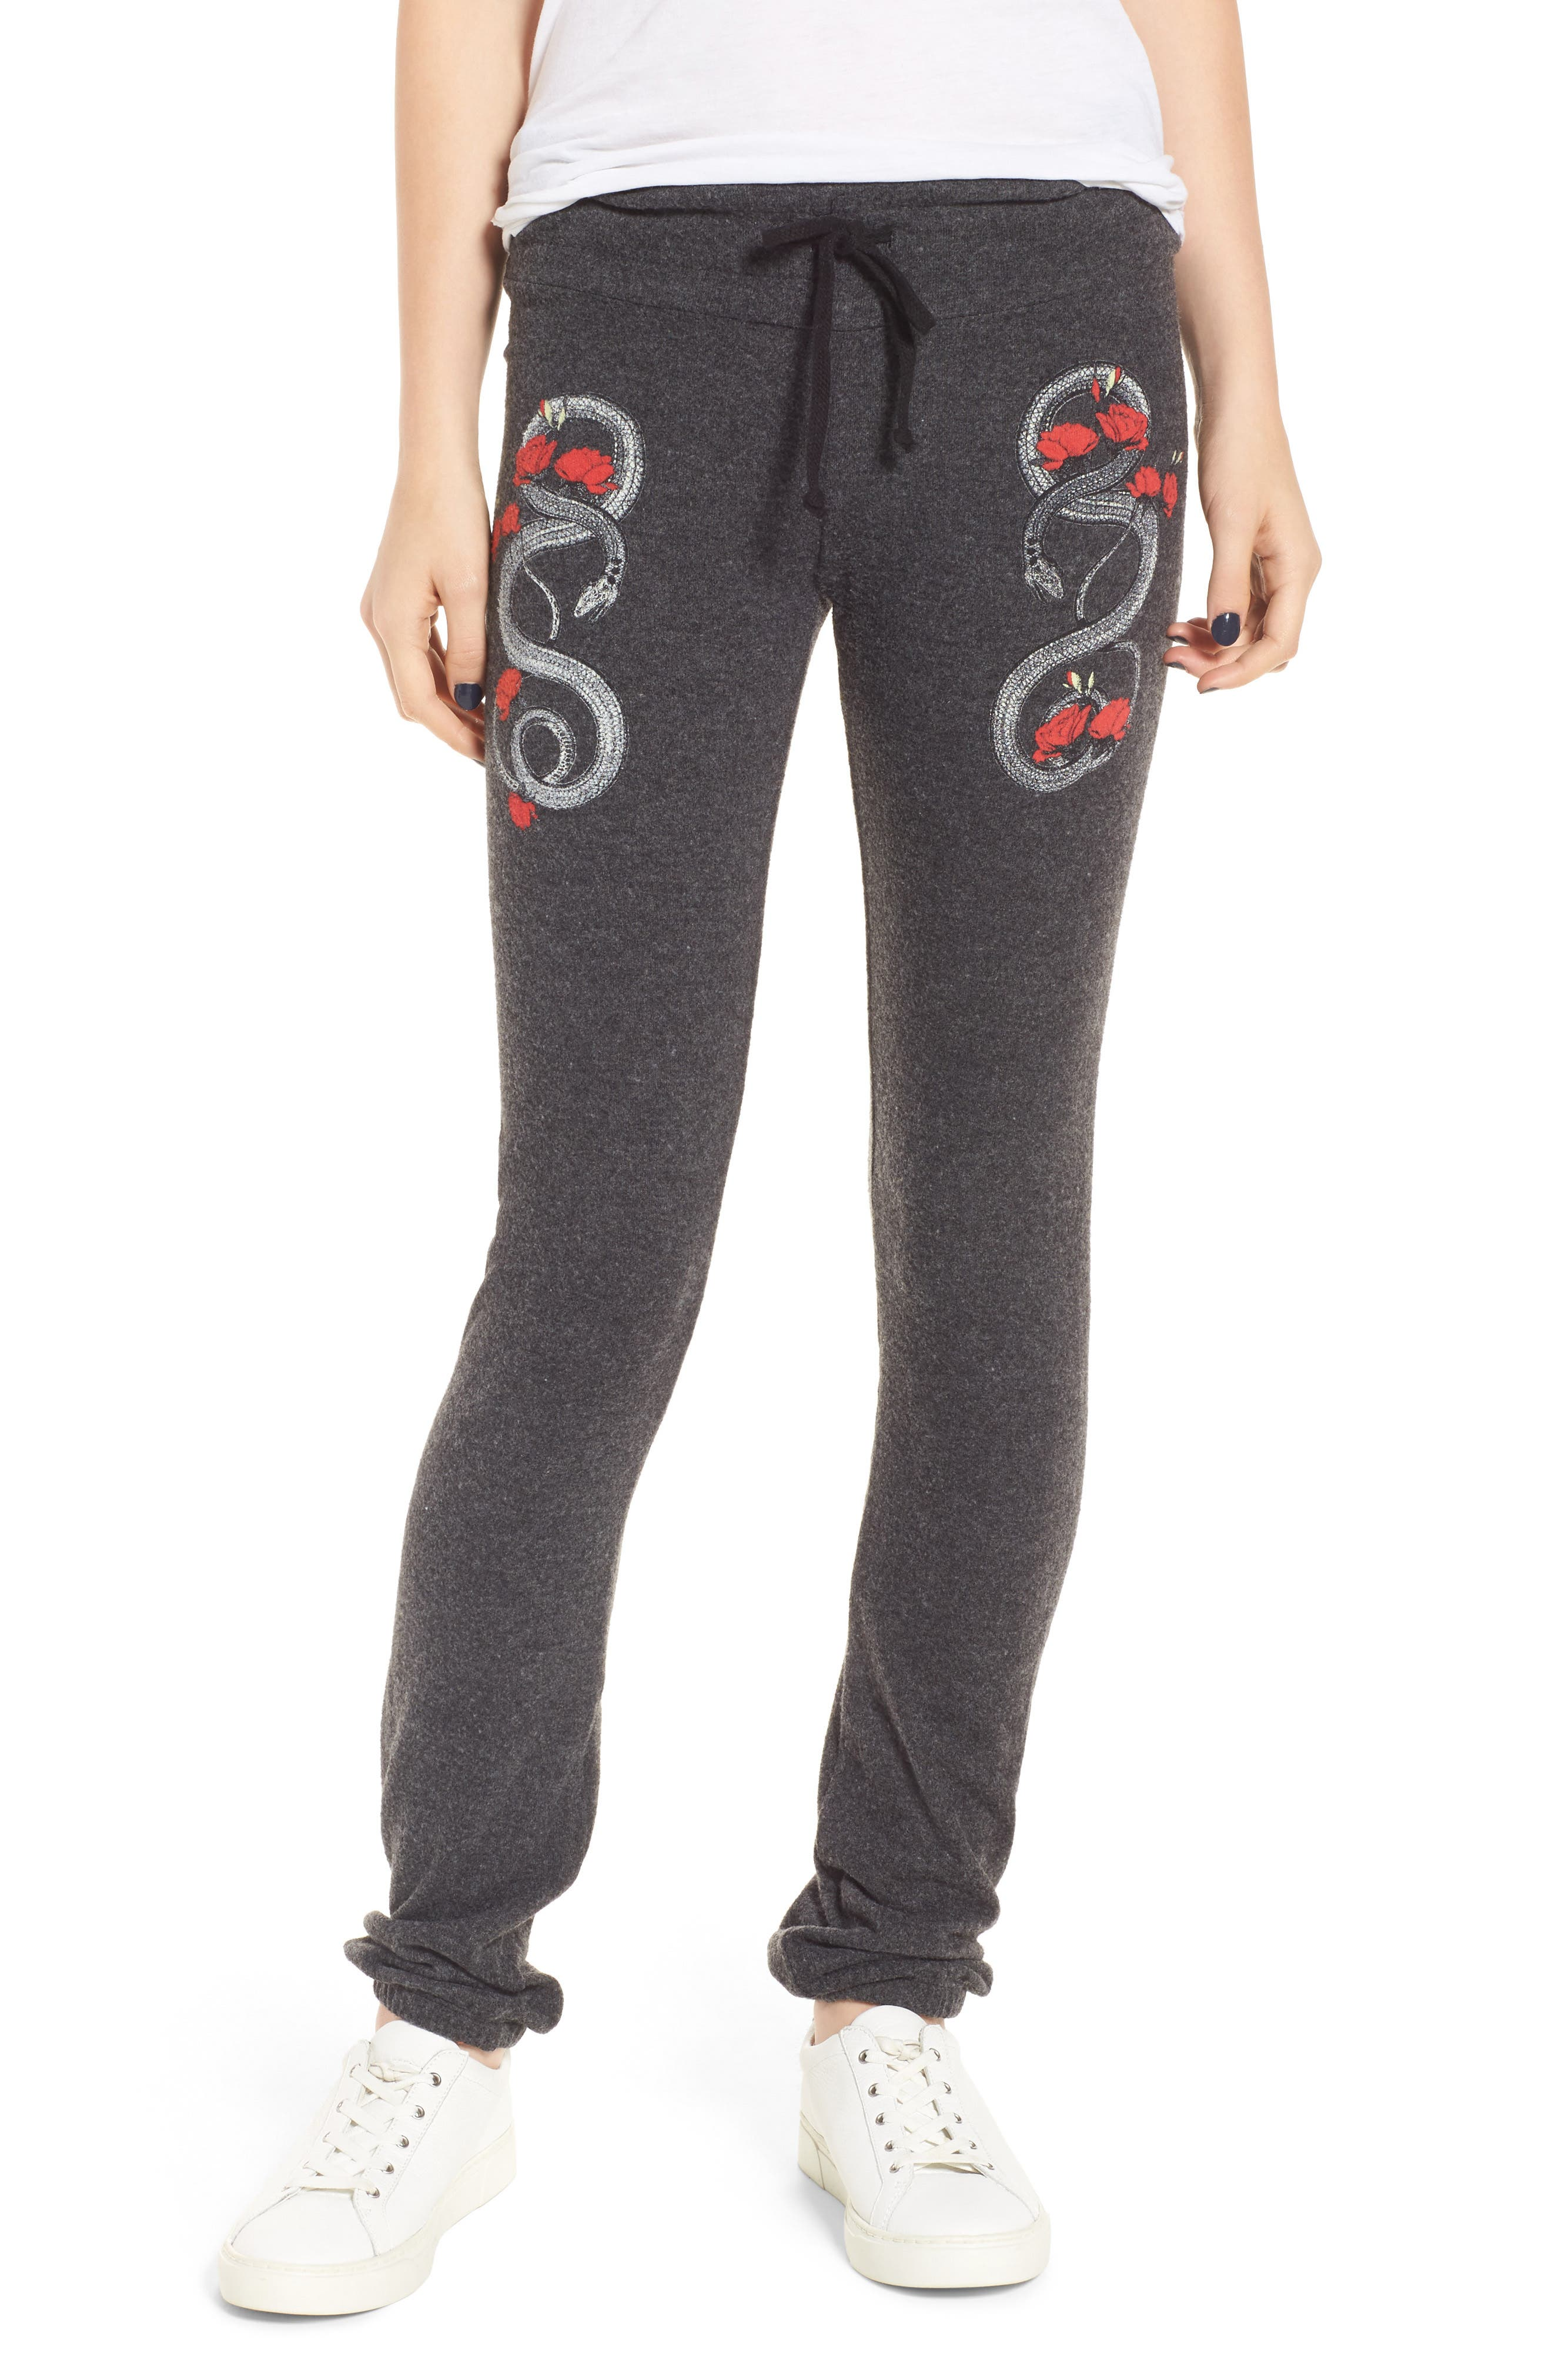 Red Snakes Sweatpants,                         Main,                         color, Clean Black